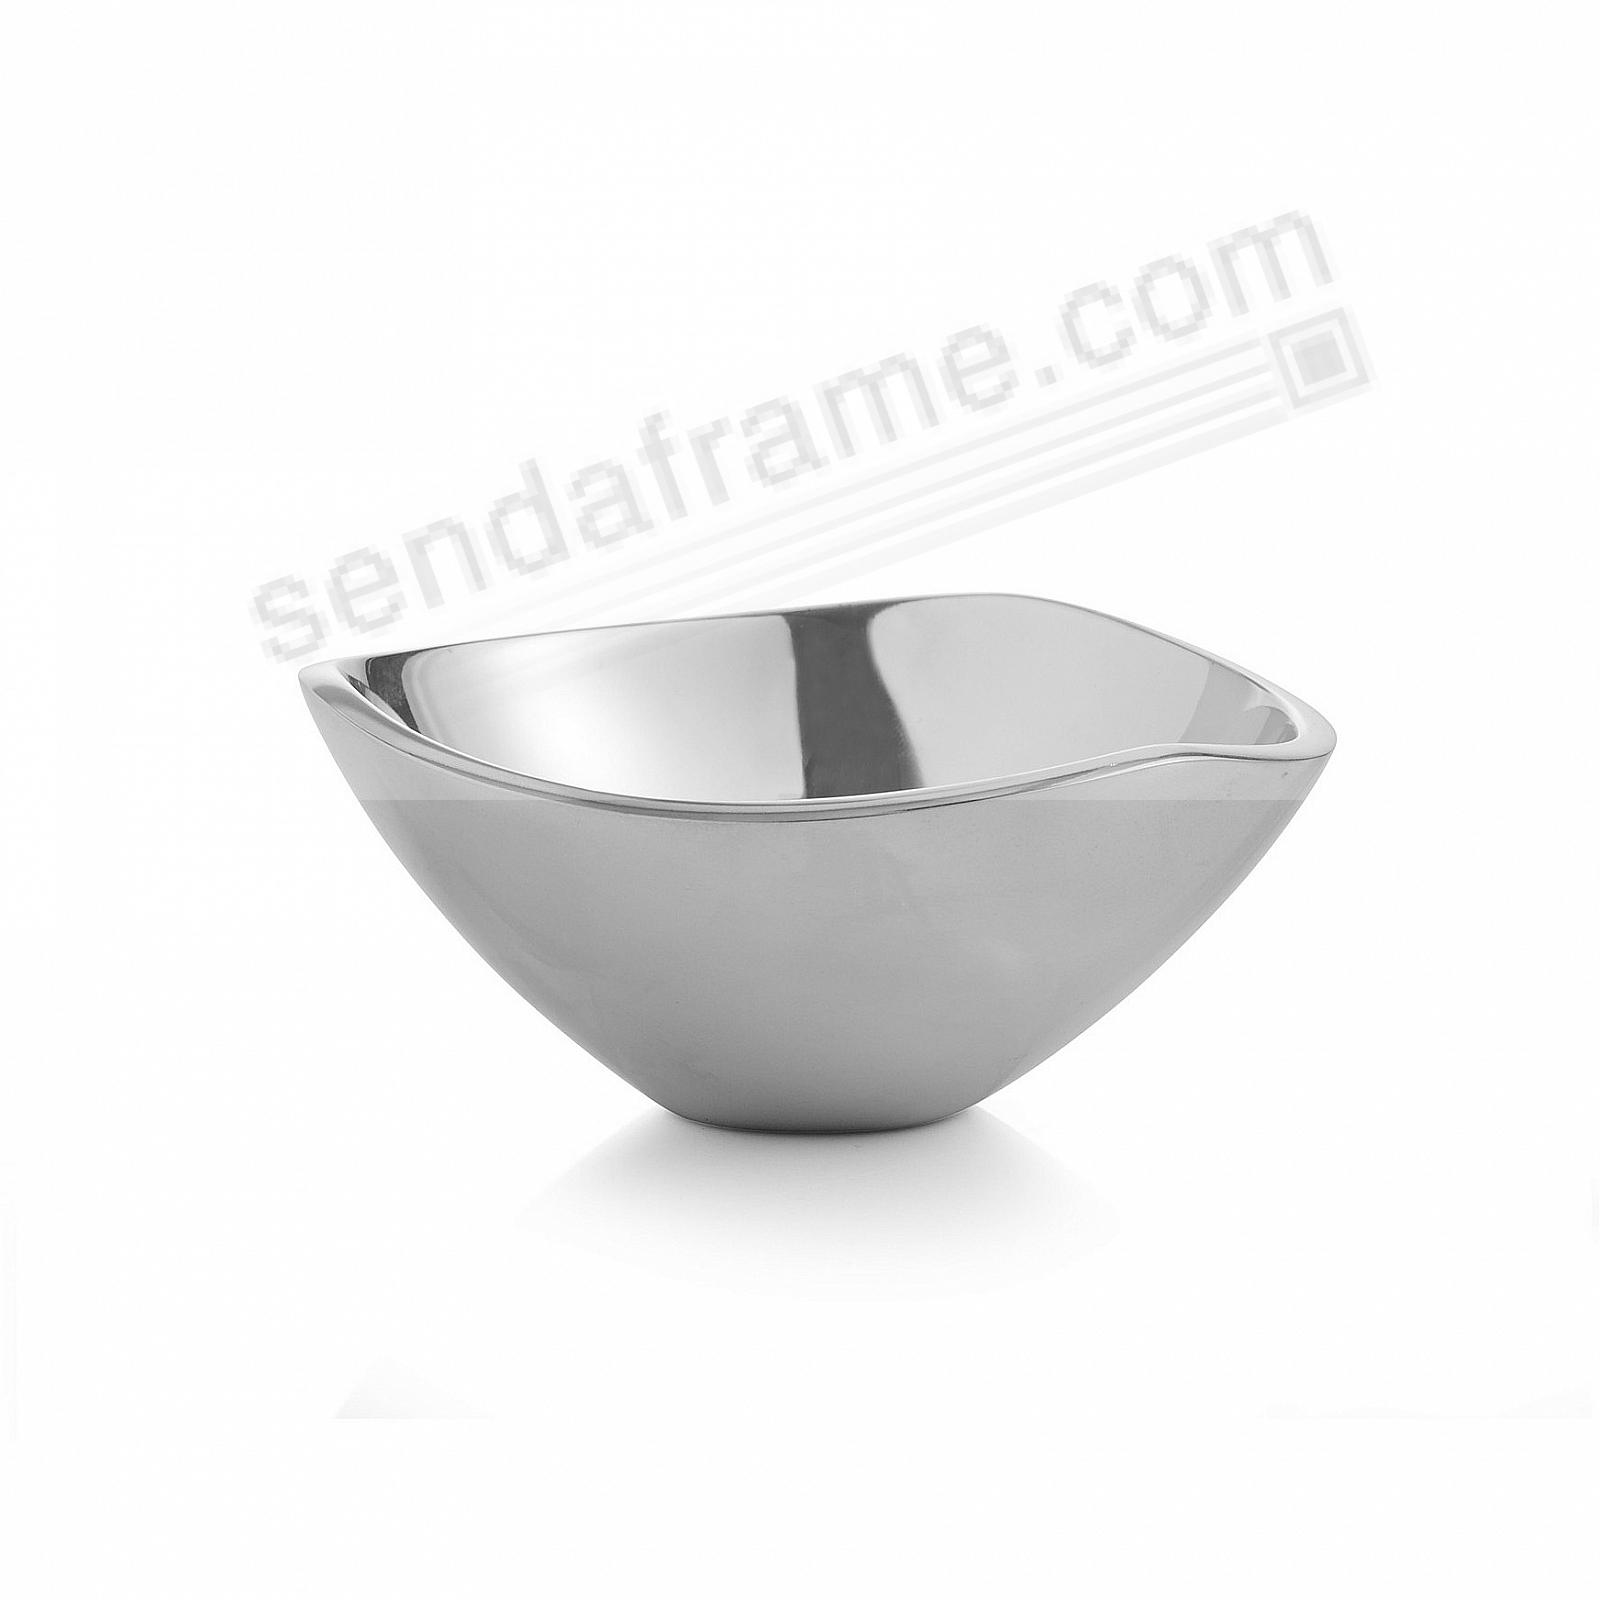 The Original TRI-CORNER MINI BOWL by Nambe®